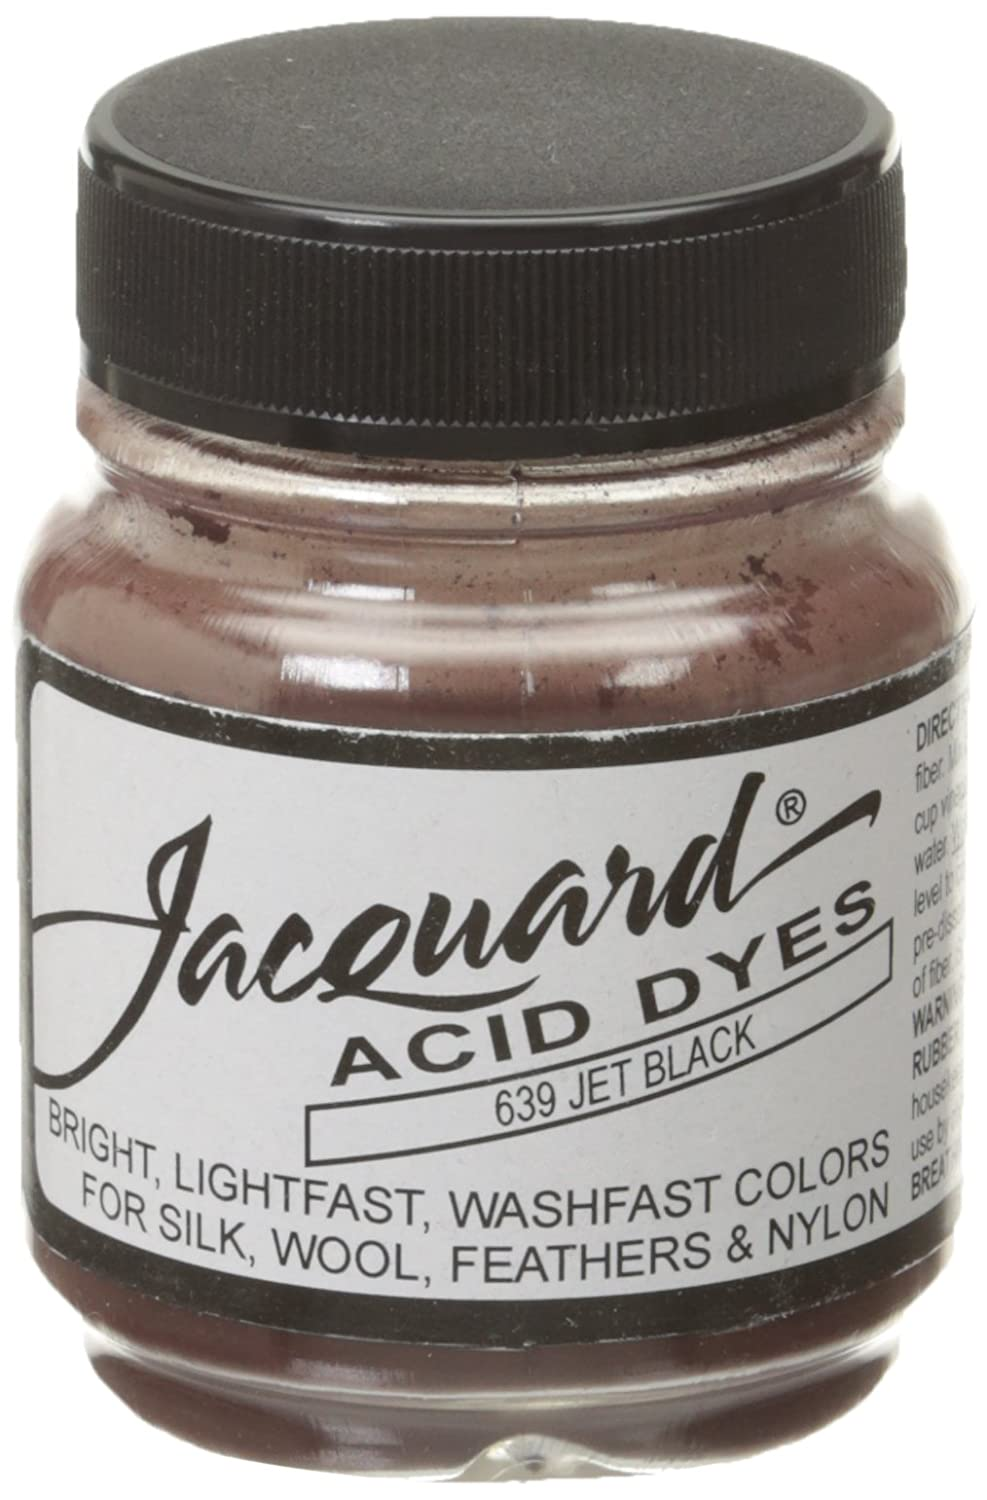 Jacquard Acid Dyes 1/2 Ounce-Jet Black Notions - In Network 102860